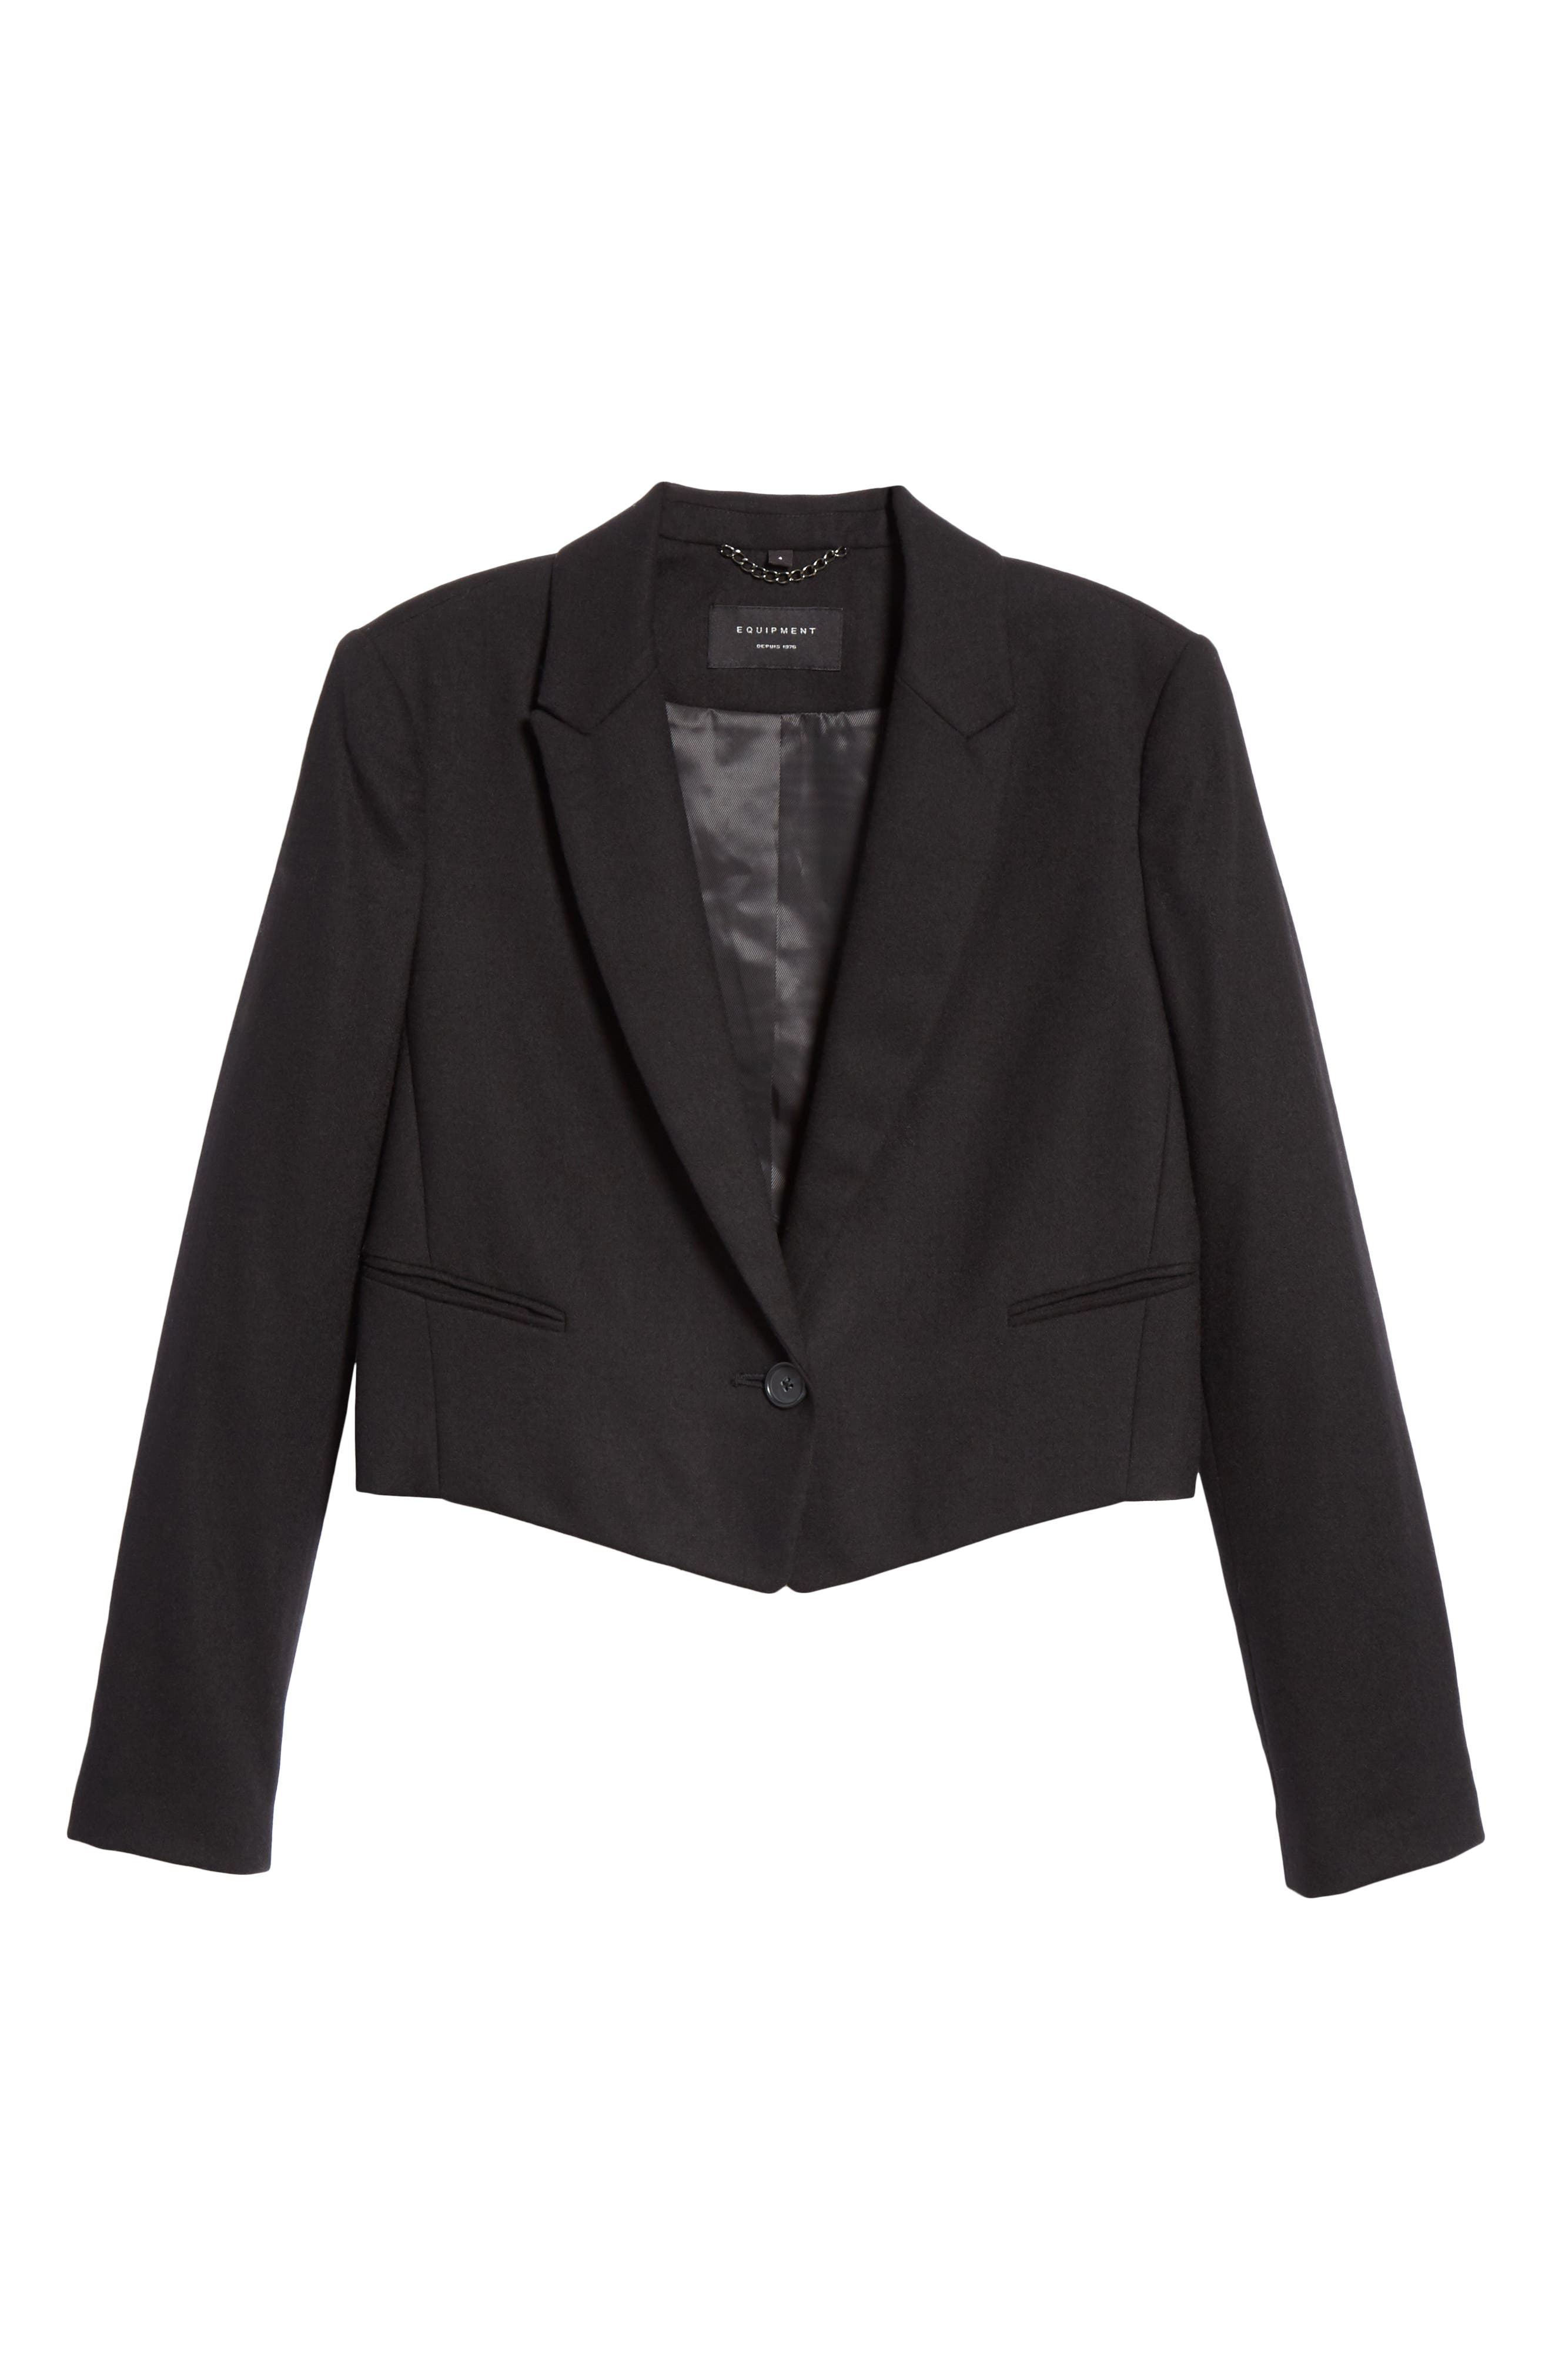 EQUIPMENT,                             Wright Wool Jacket,                             Alternate thumbnail 5, color,                             001